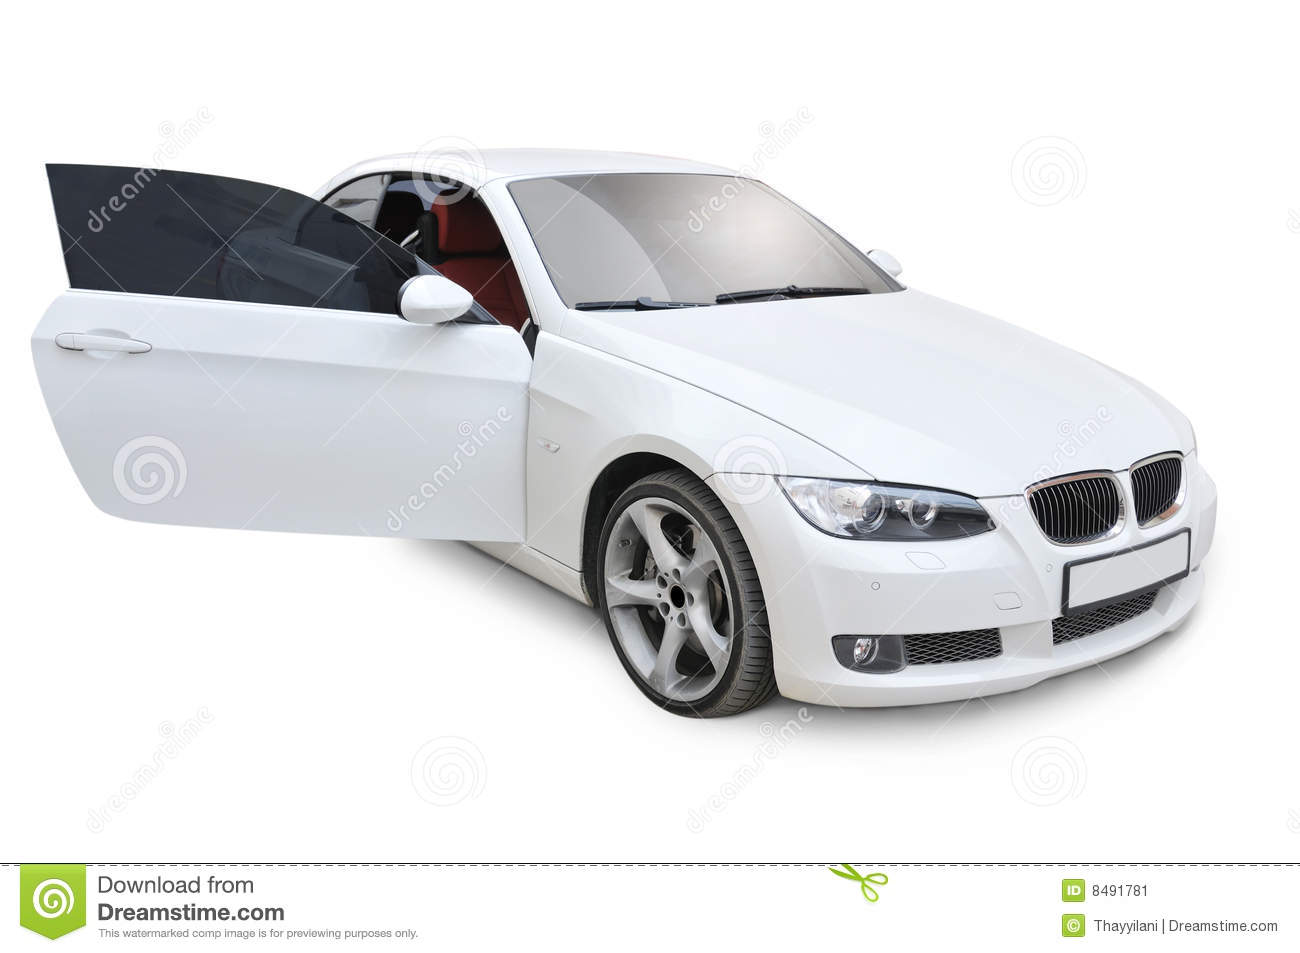 Le Meilleur Bmw 335I Right Door Open Stock Image Image Of Front Cars Ce Mois Ci